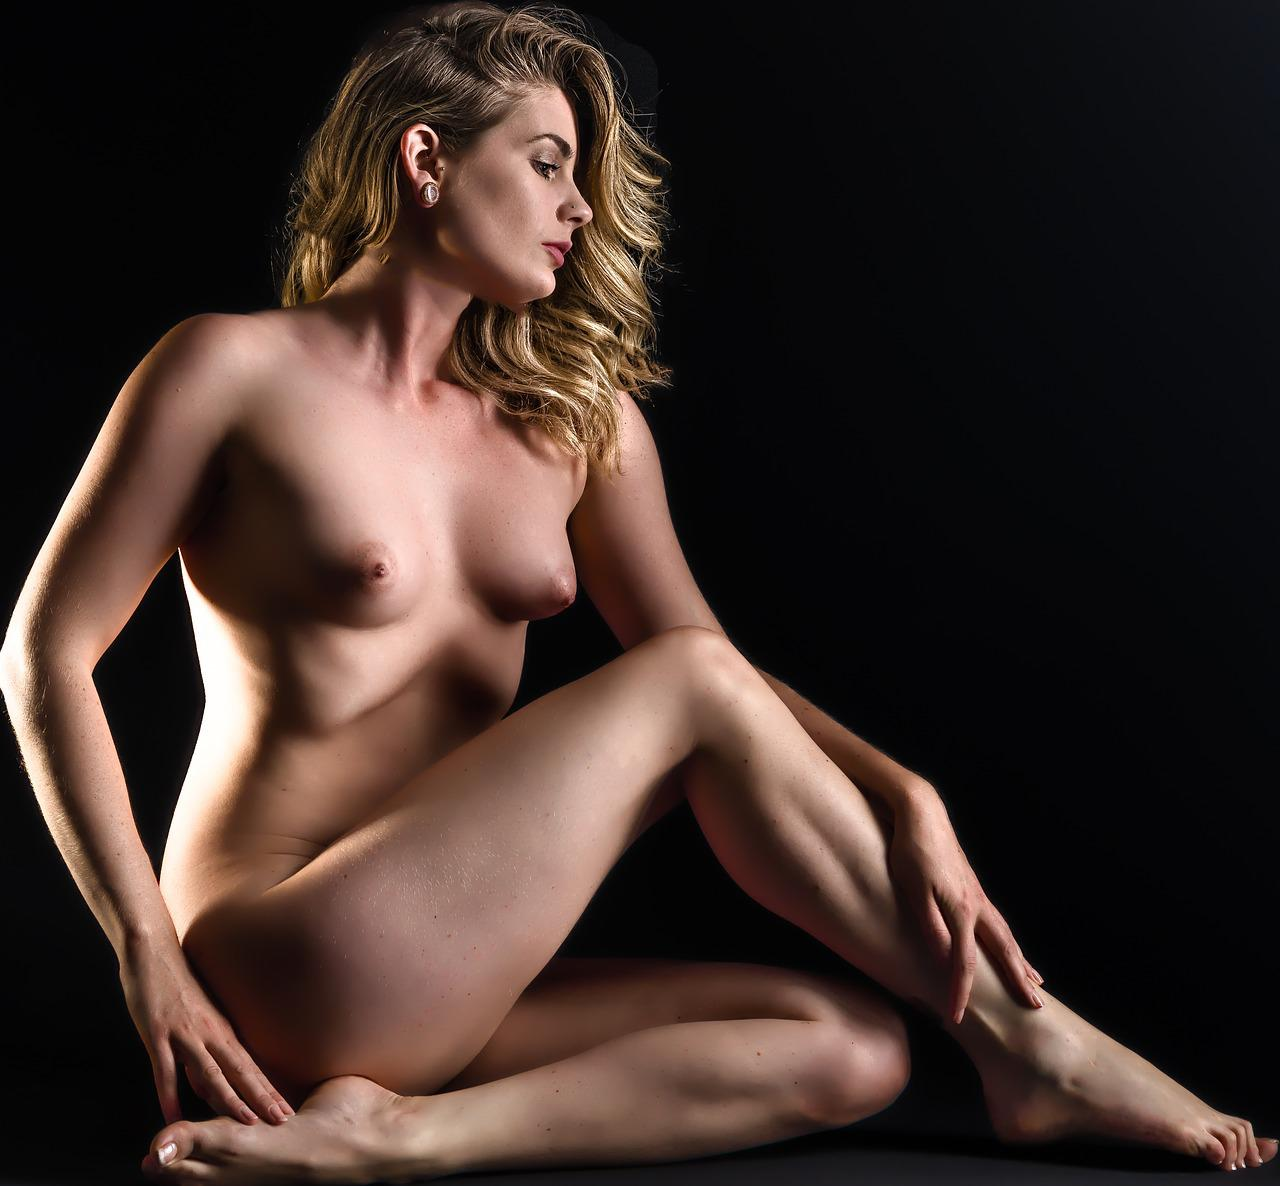 Woman photo shoot nude